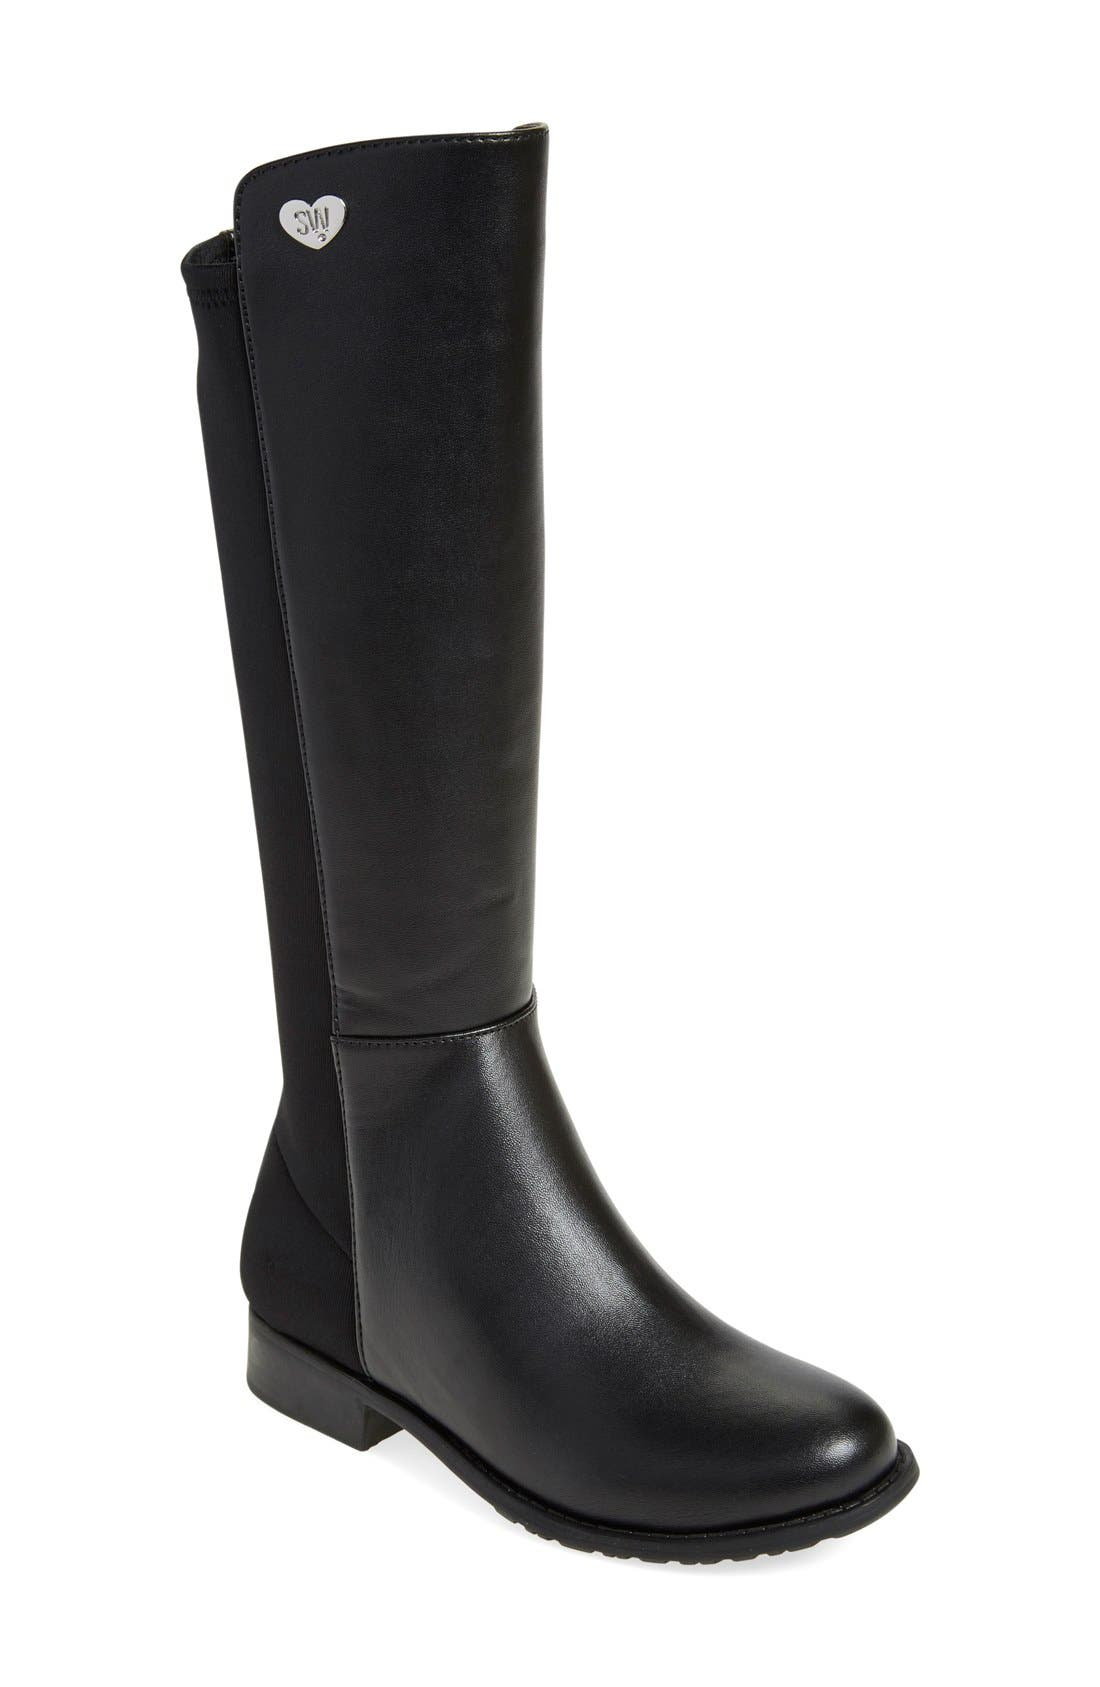 Alternate Image 1 Selected - Stuart Weitzman '50/50' Stretch Back Riding Boot (Walker, Toddler, Little Kid & Big Kid)